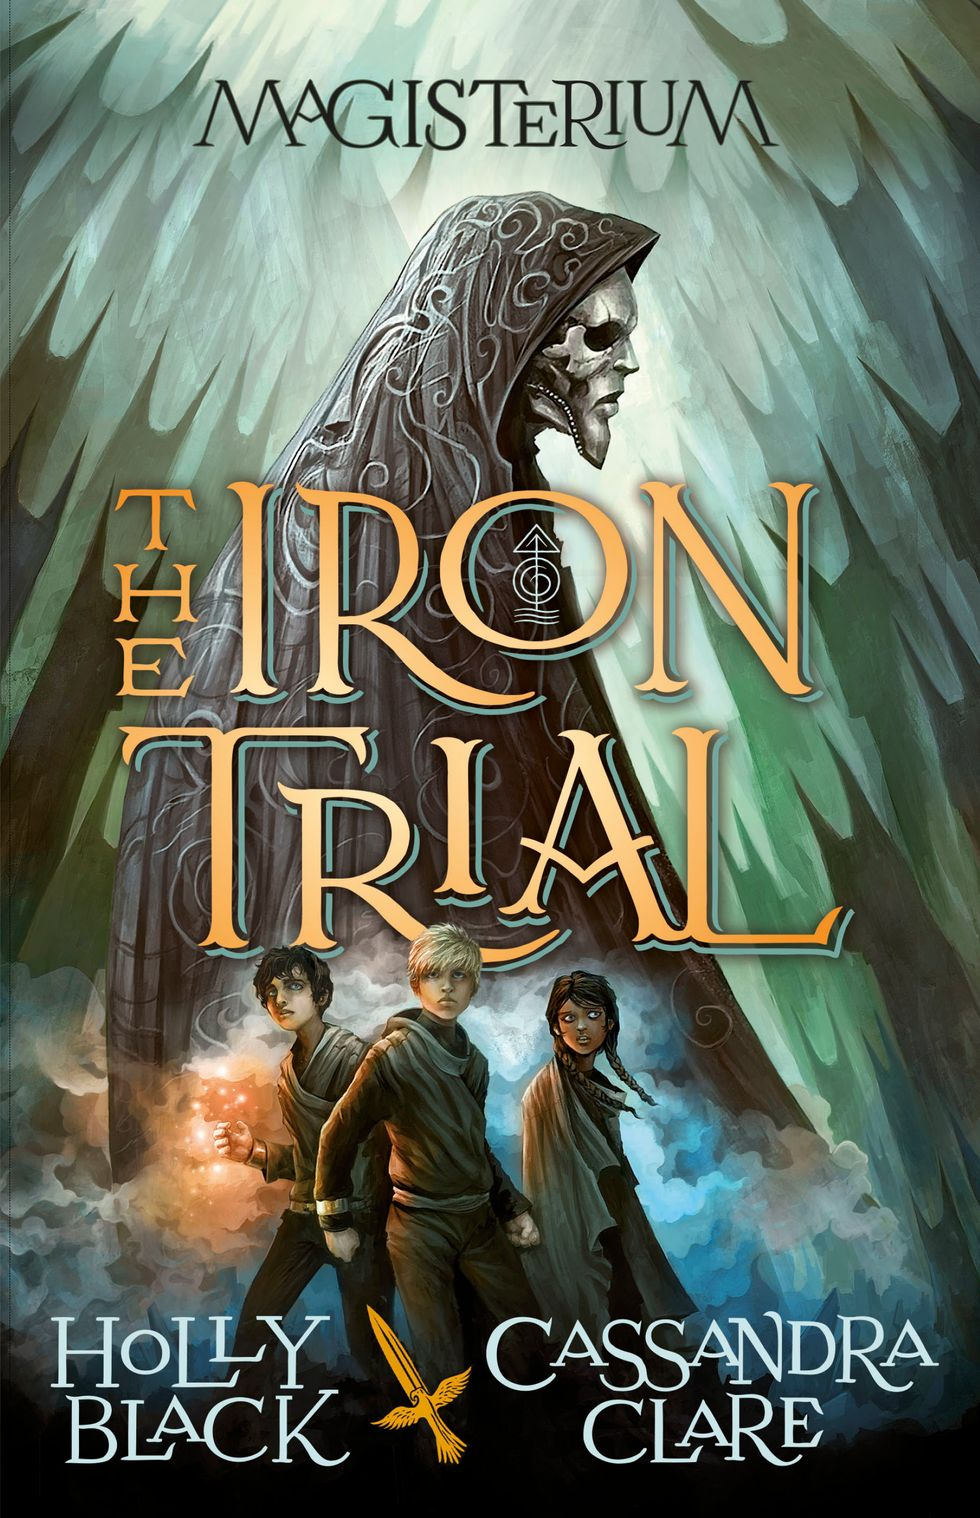 http://disabilityinkidlit.com/2015/03/20/review-the-iron-trial-by-holly-black-cassandra-clare/